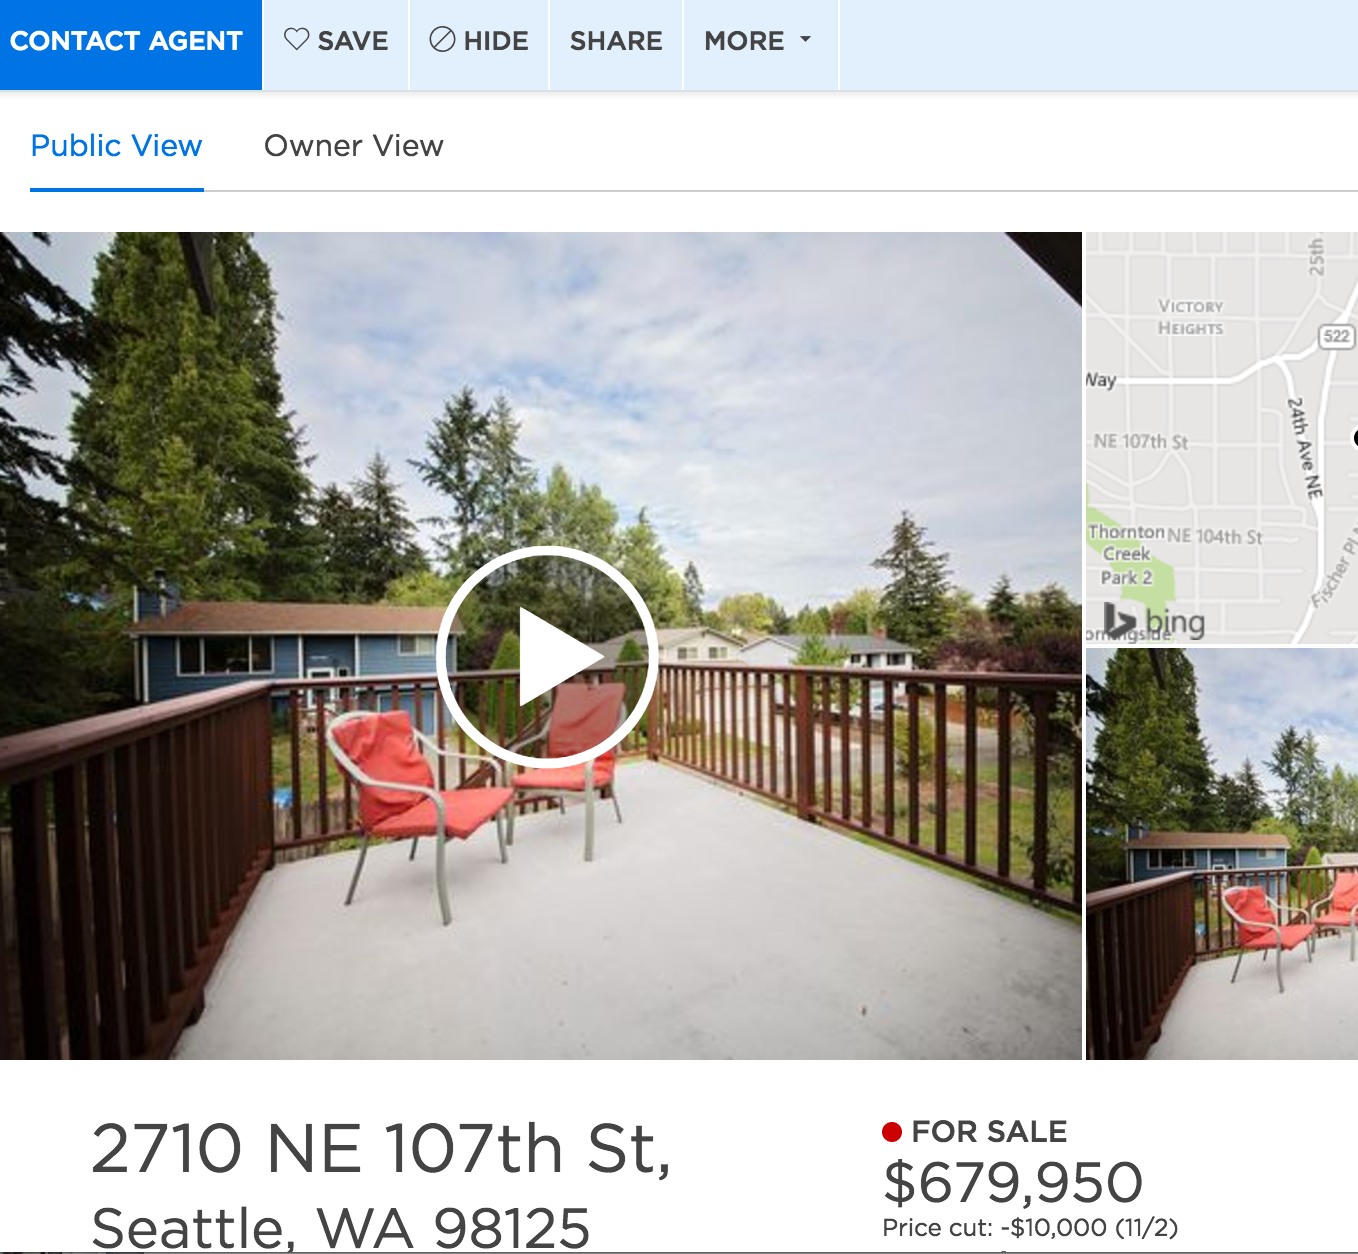 zillow-listing-video